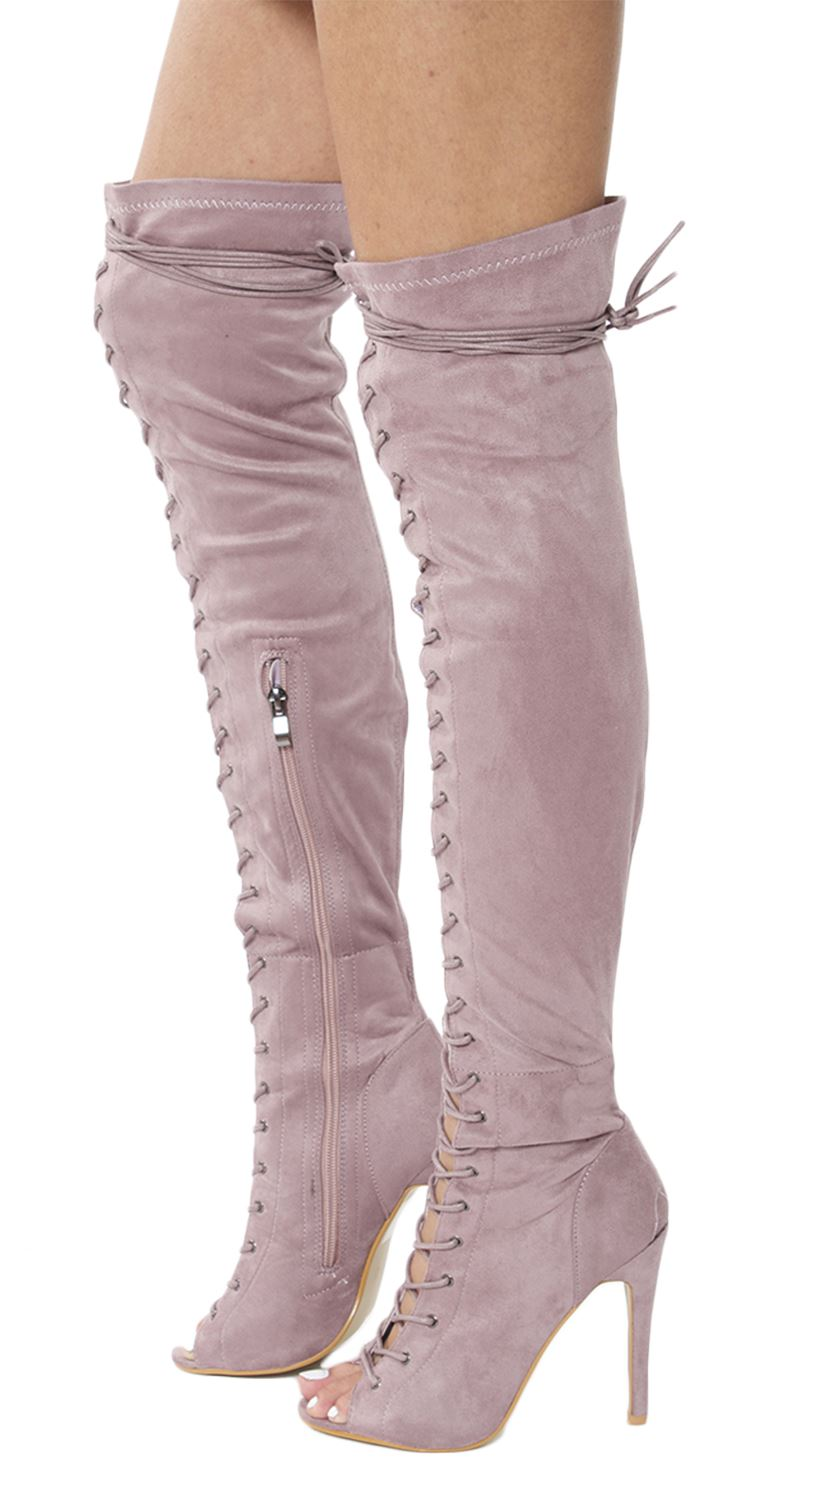 new womens front lace thigh high stiletto heel boots